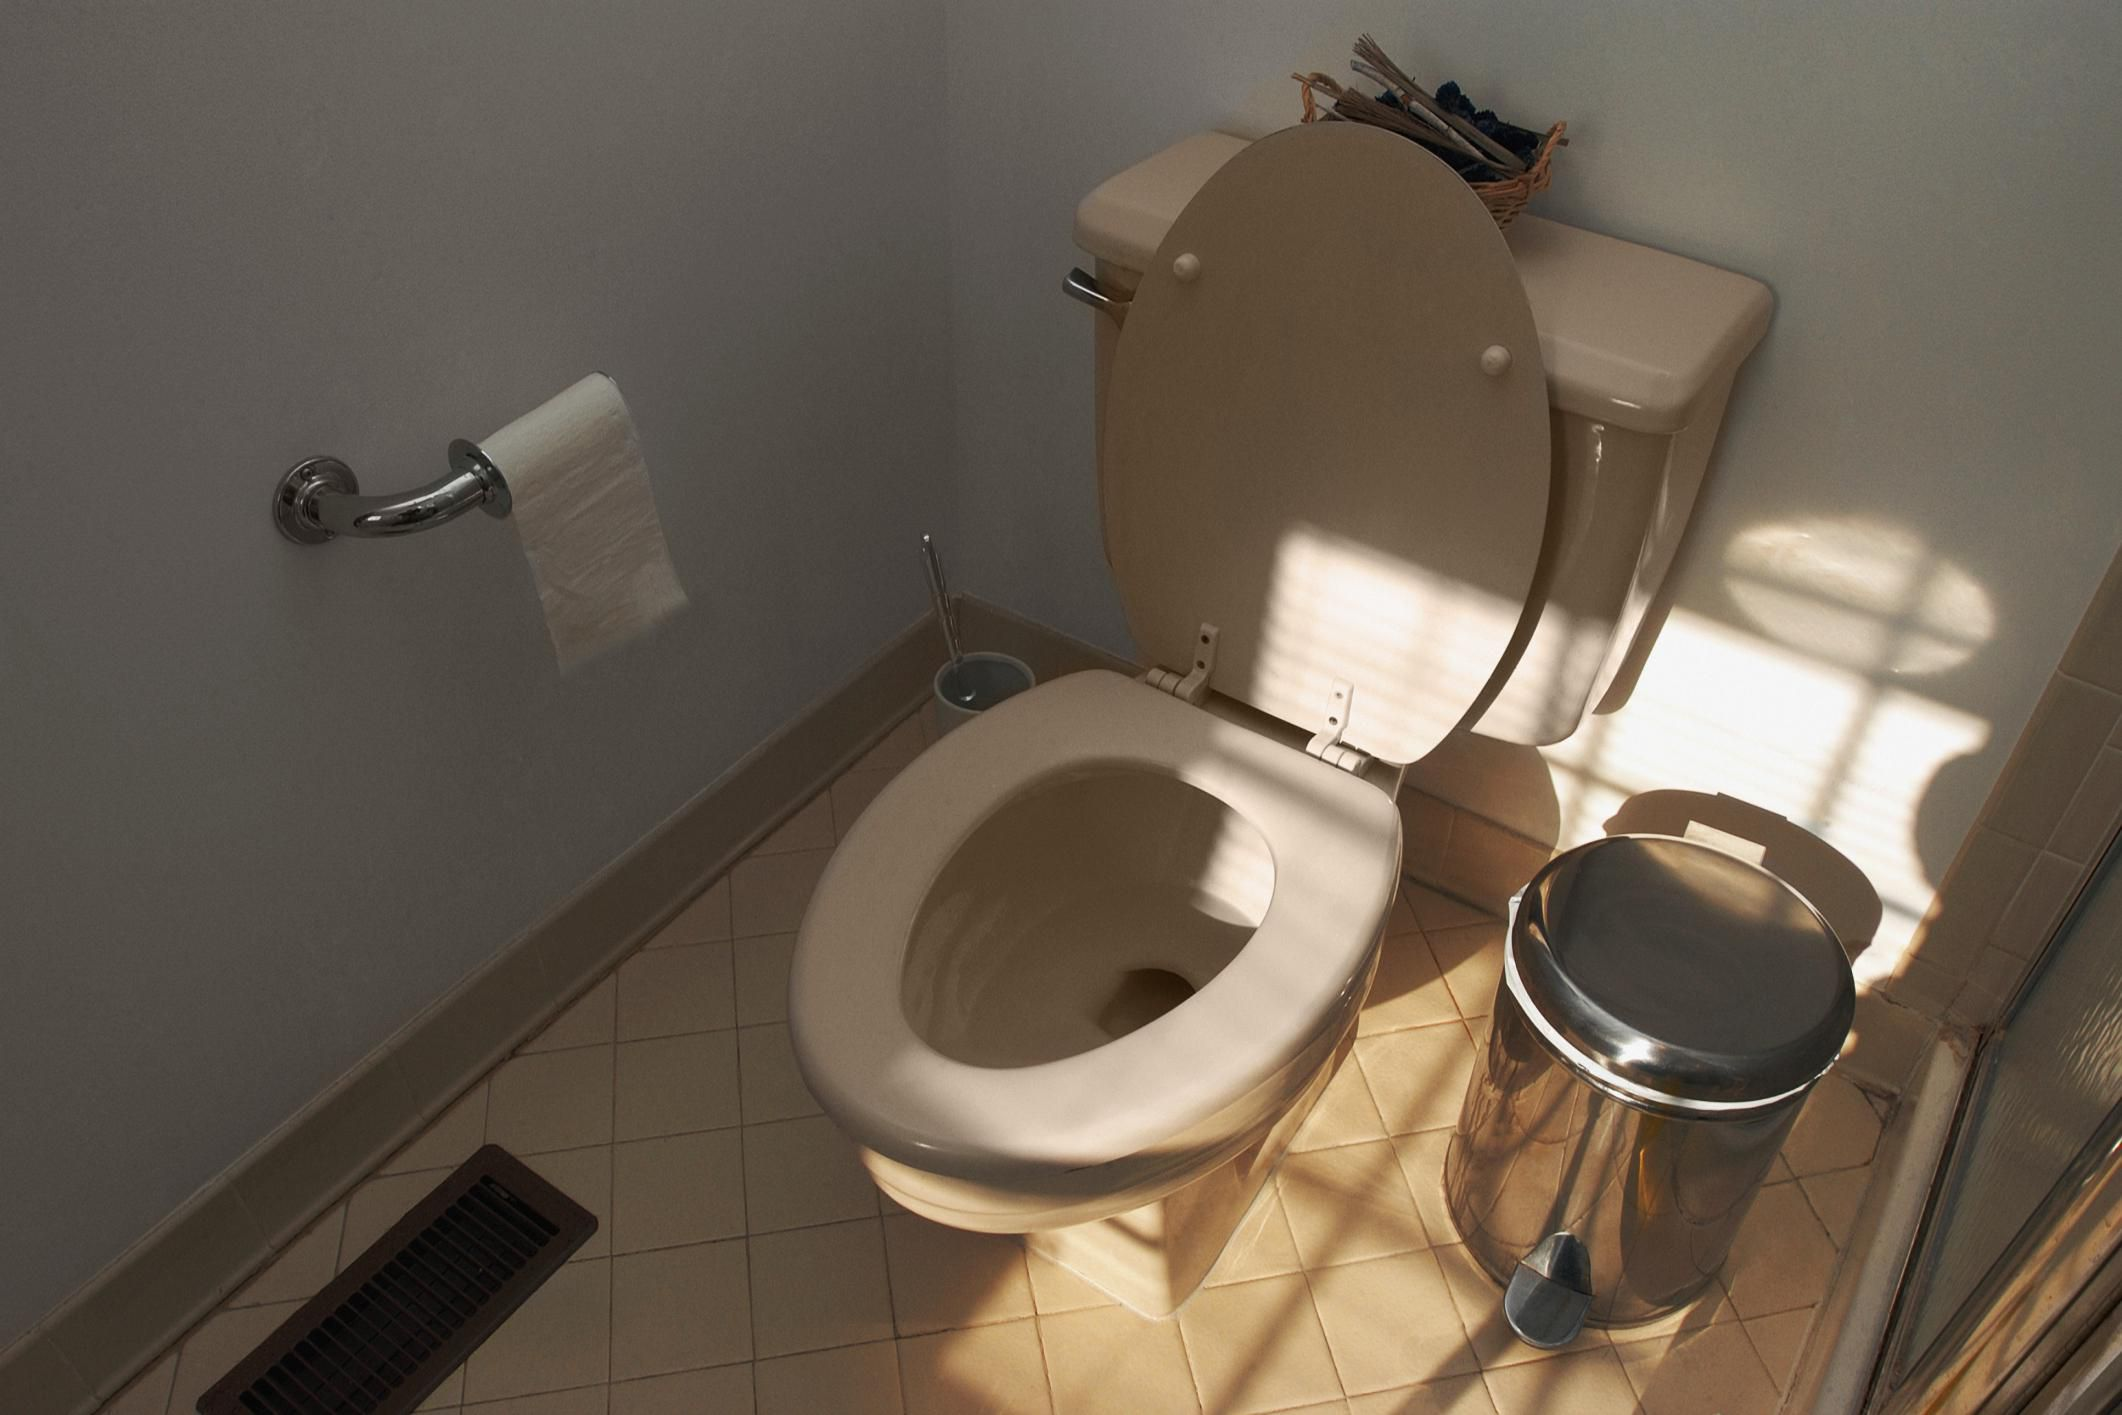 How To Tighten Up A Loose Toilet Seat